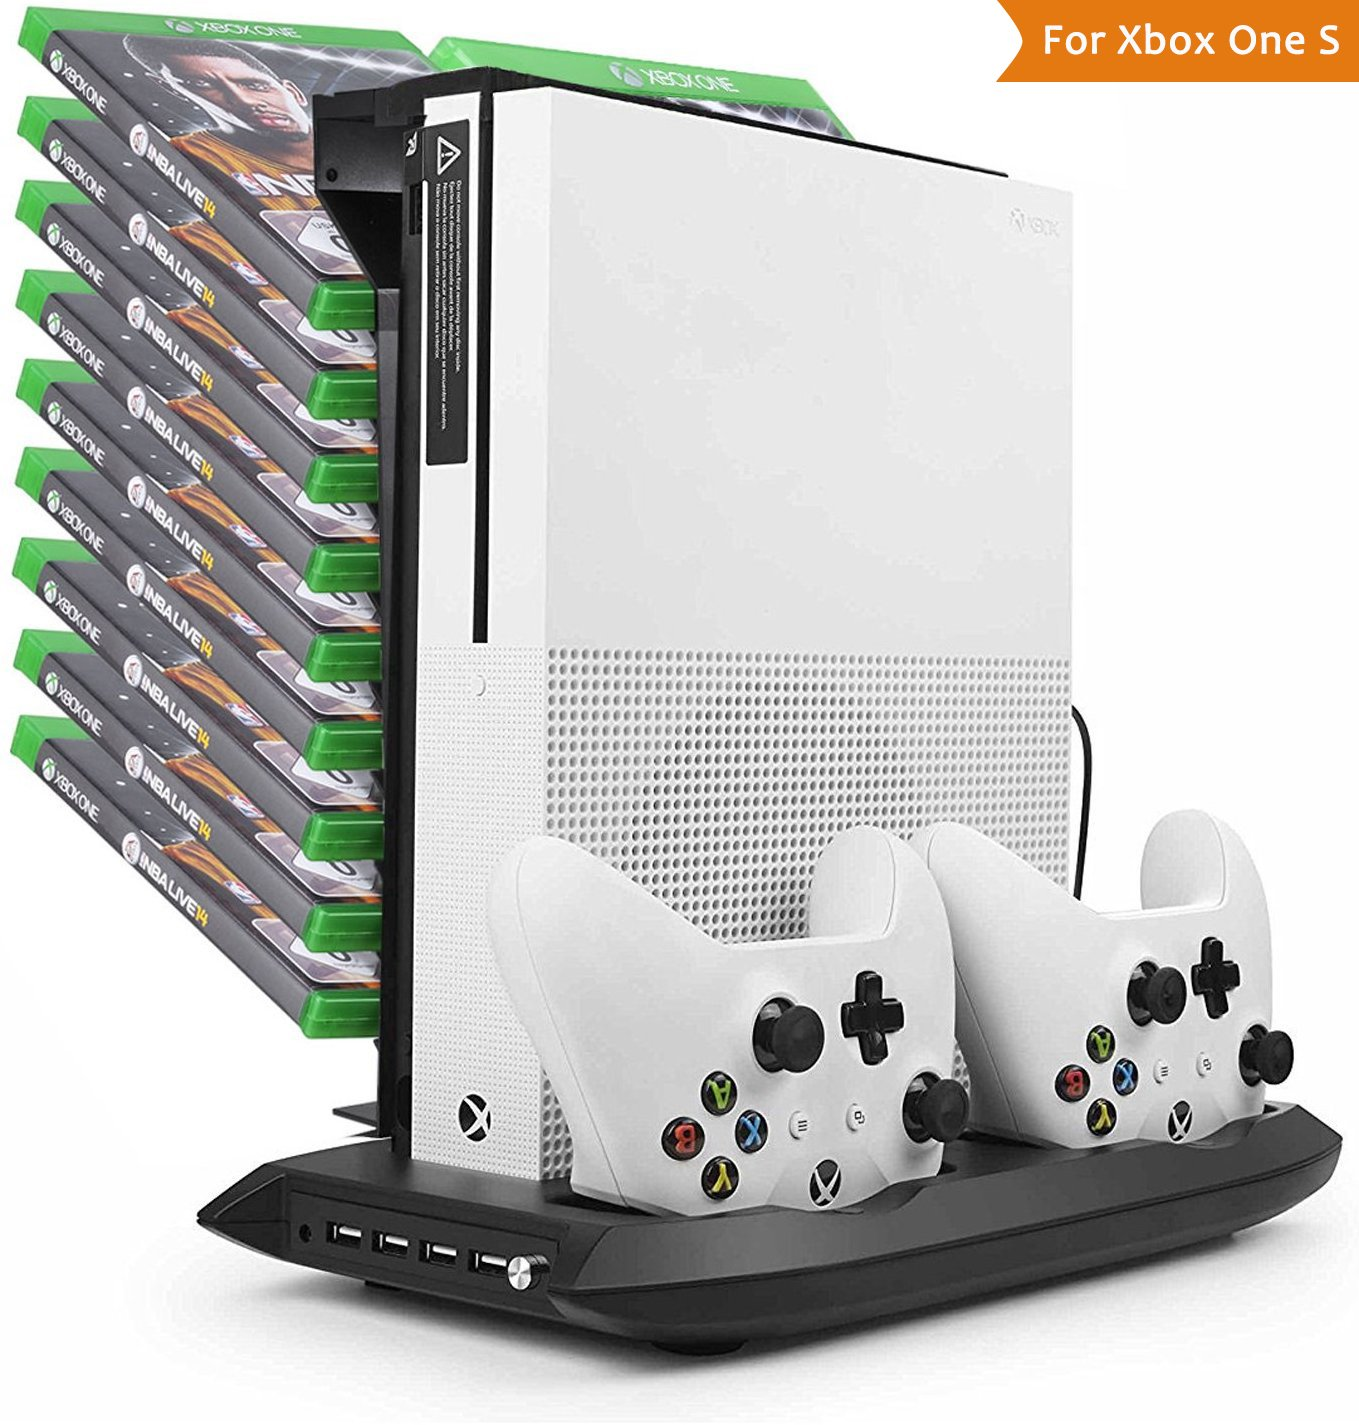 LeSB Xbox One S Vertical Stand Cooling Fan, Dual: Amazon.co.uk ...